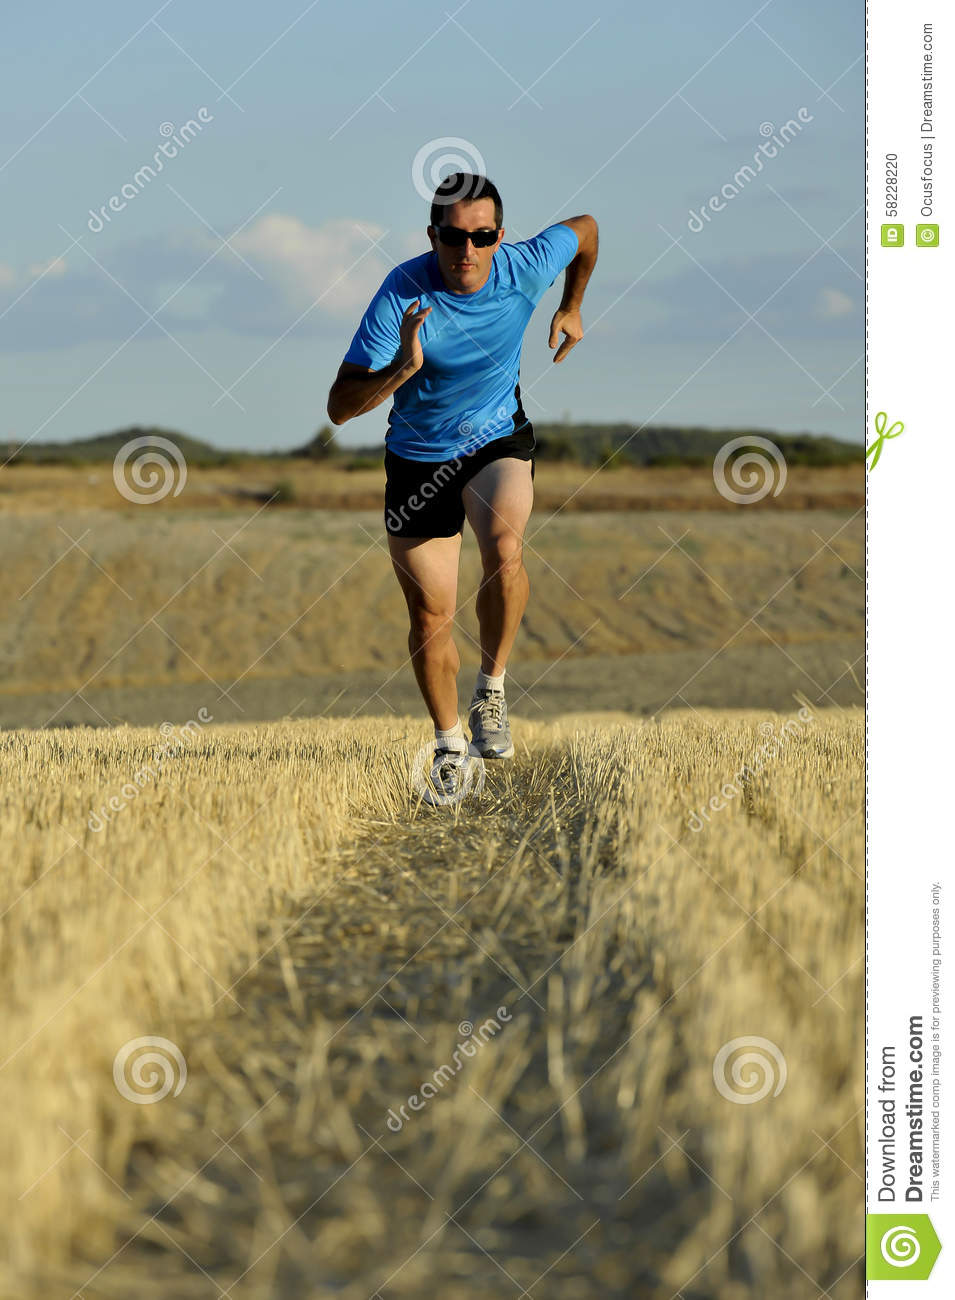 sunglasses running zibg  Sport man with sunglasses running outdoors on straw field ground in frontal  perspective